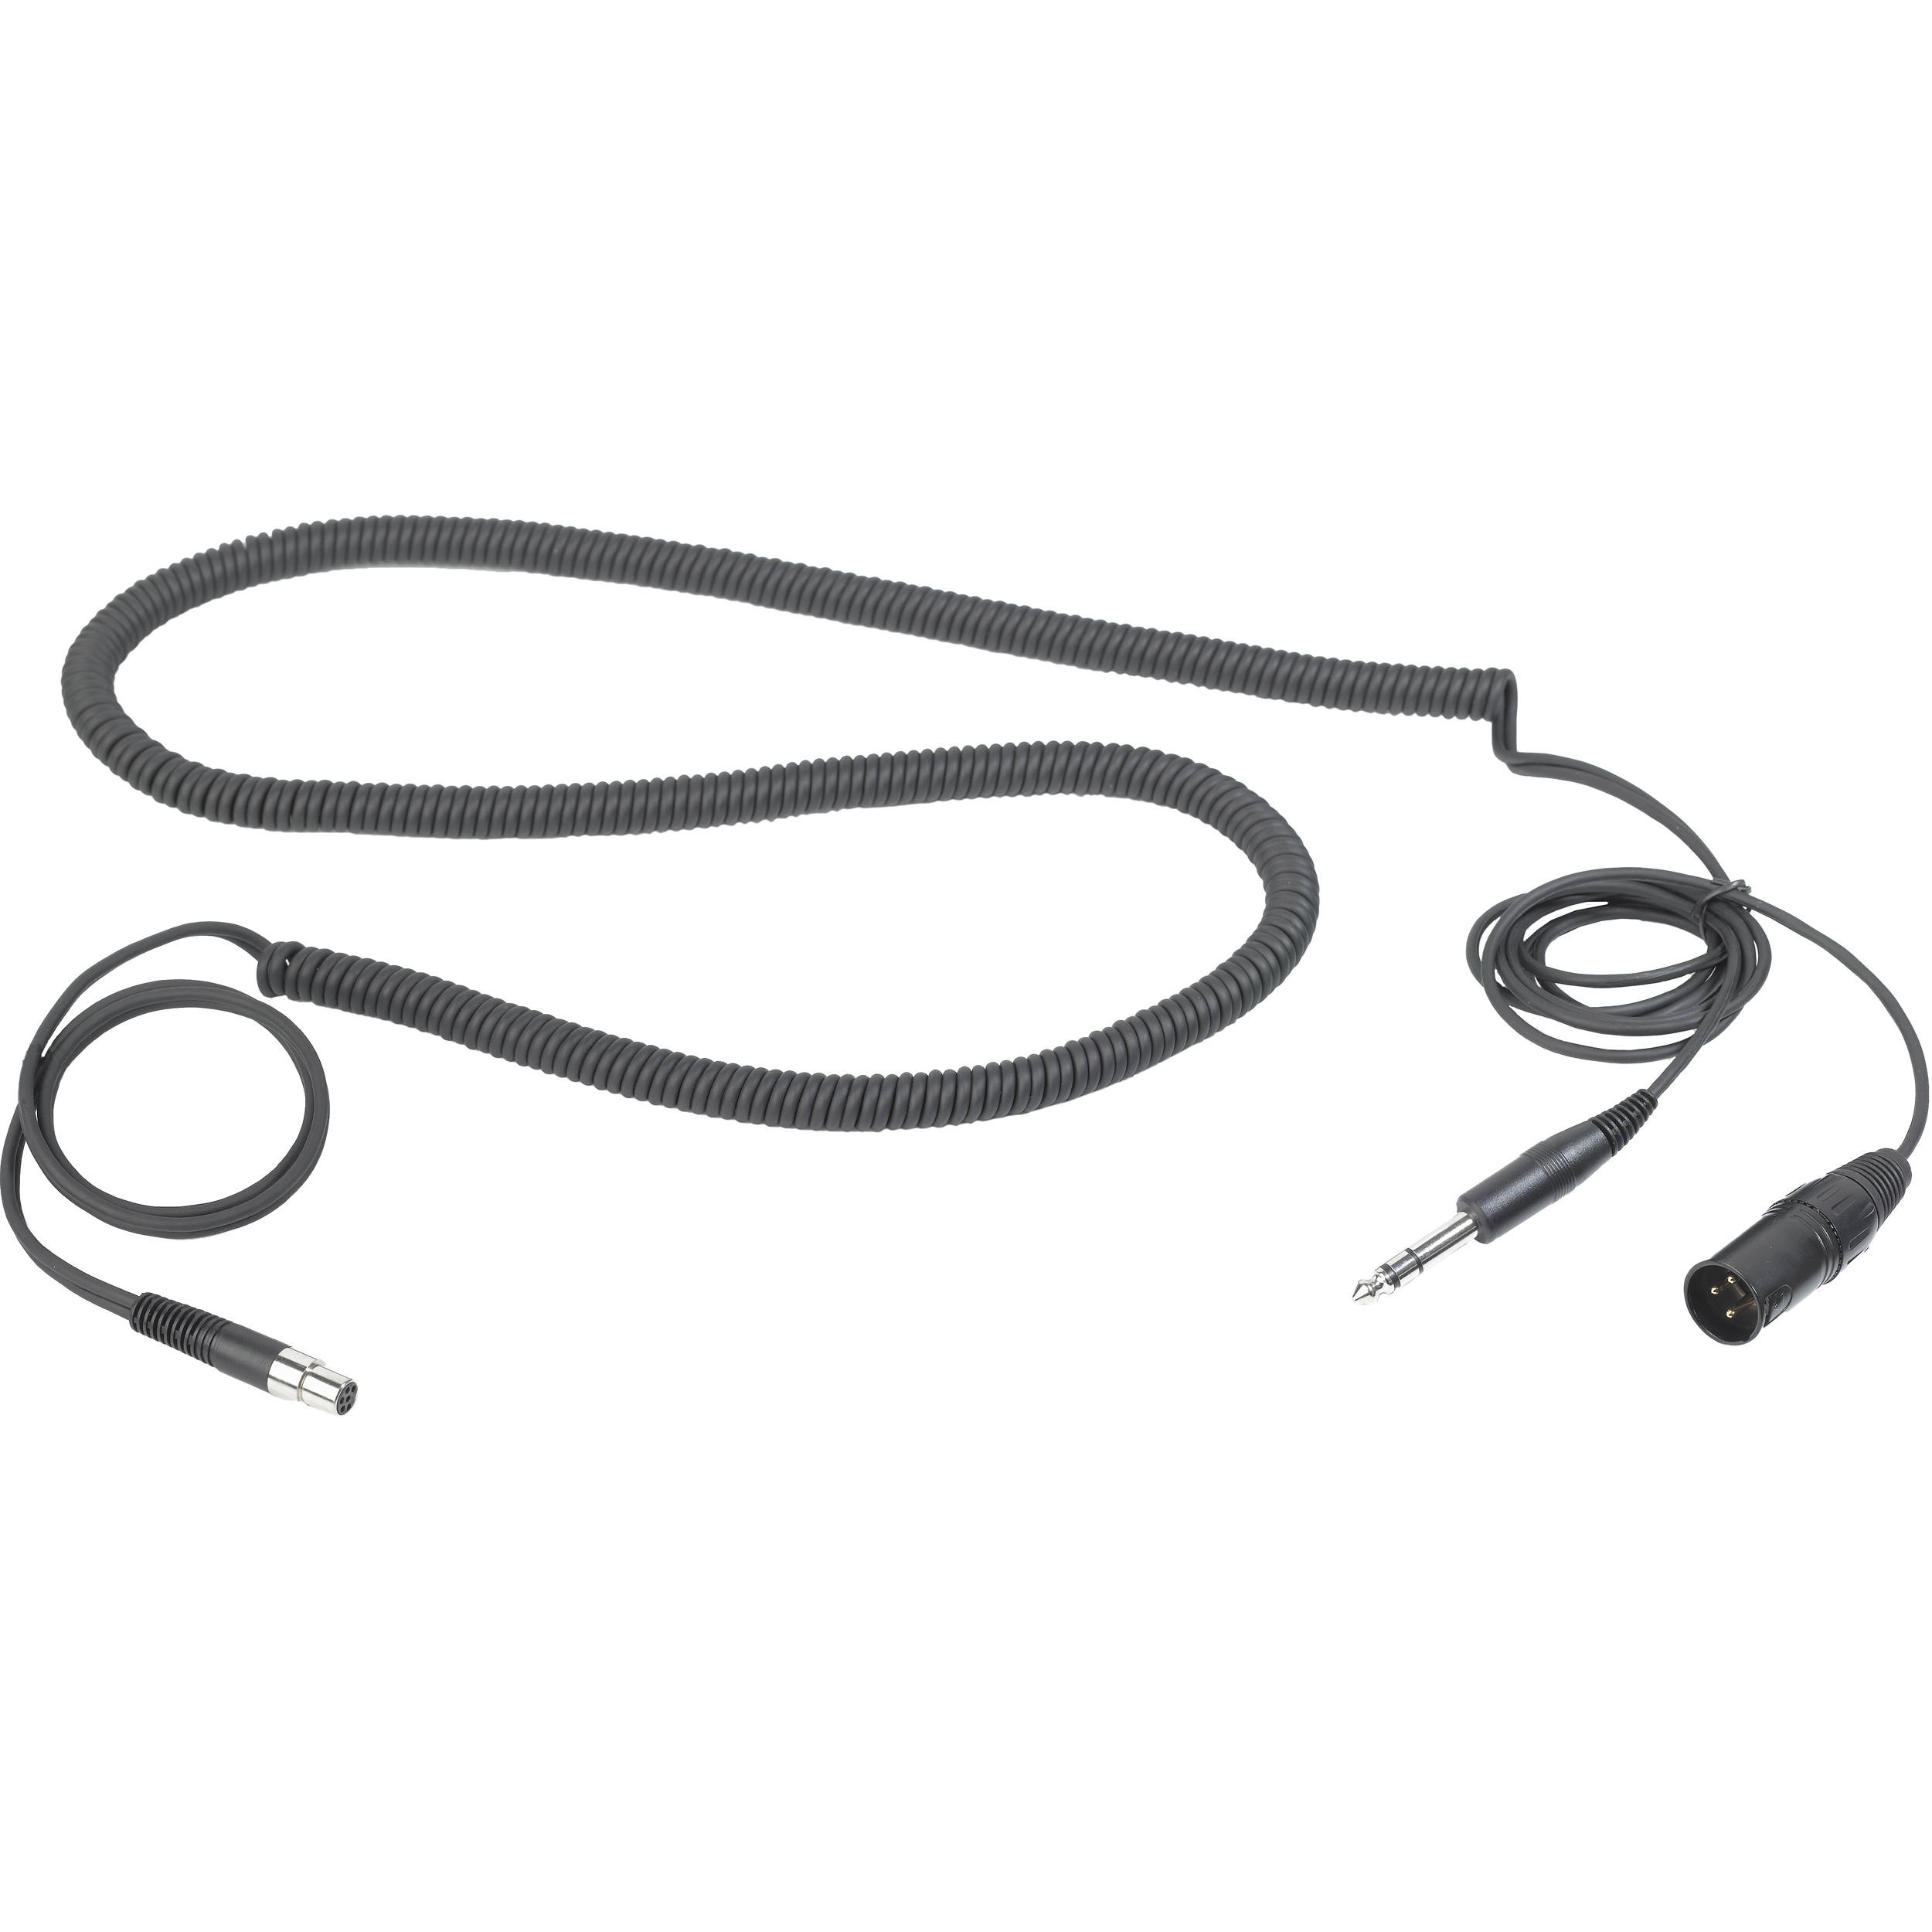 """AKG MK HS STUDIO D Headset Cable for Studio and Moderators with 3-Pin XLR & 1/4"""" Stereo Connectors"""